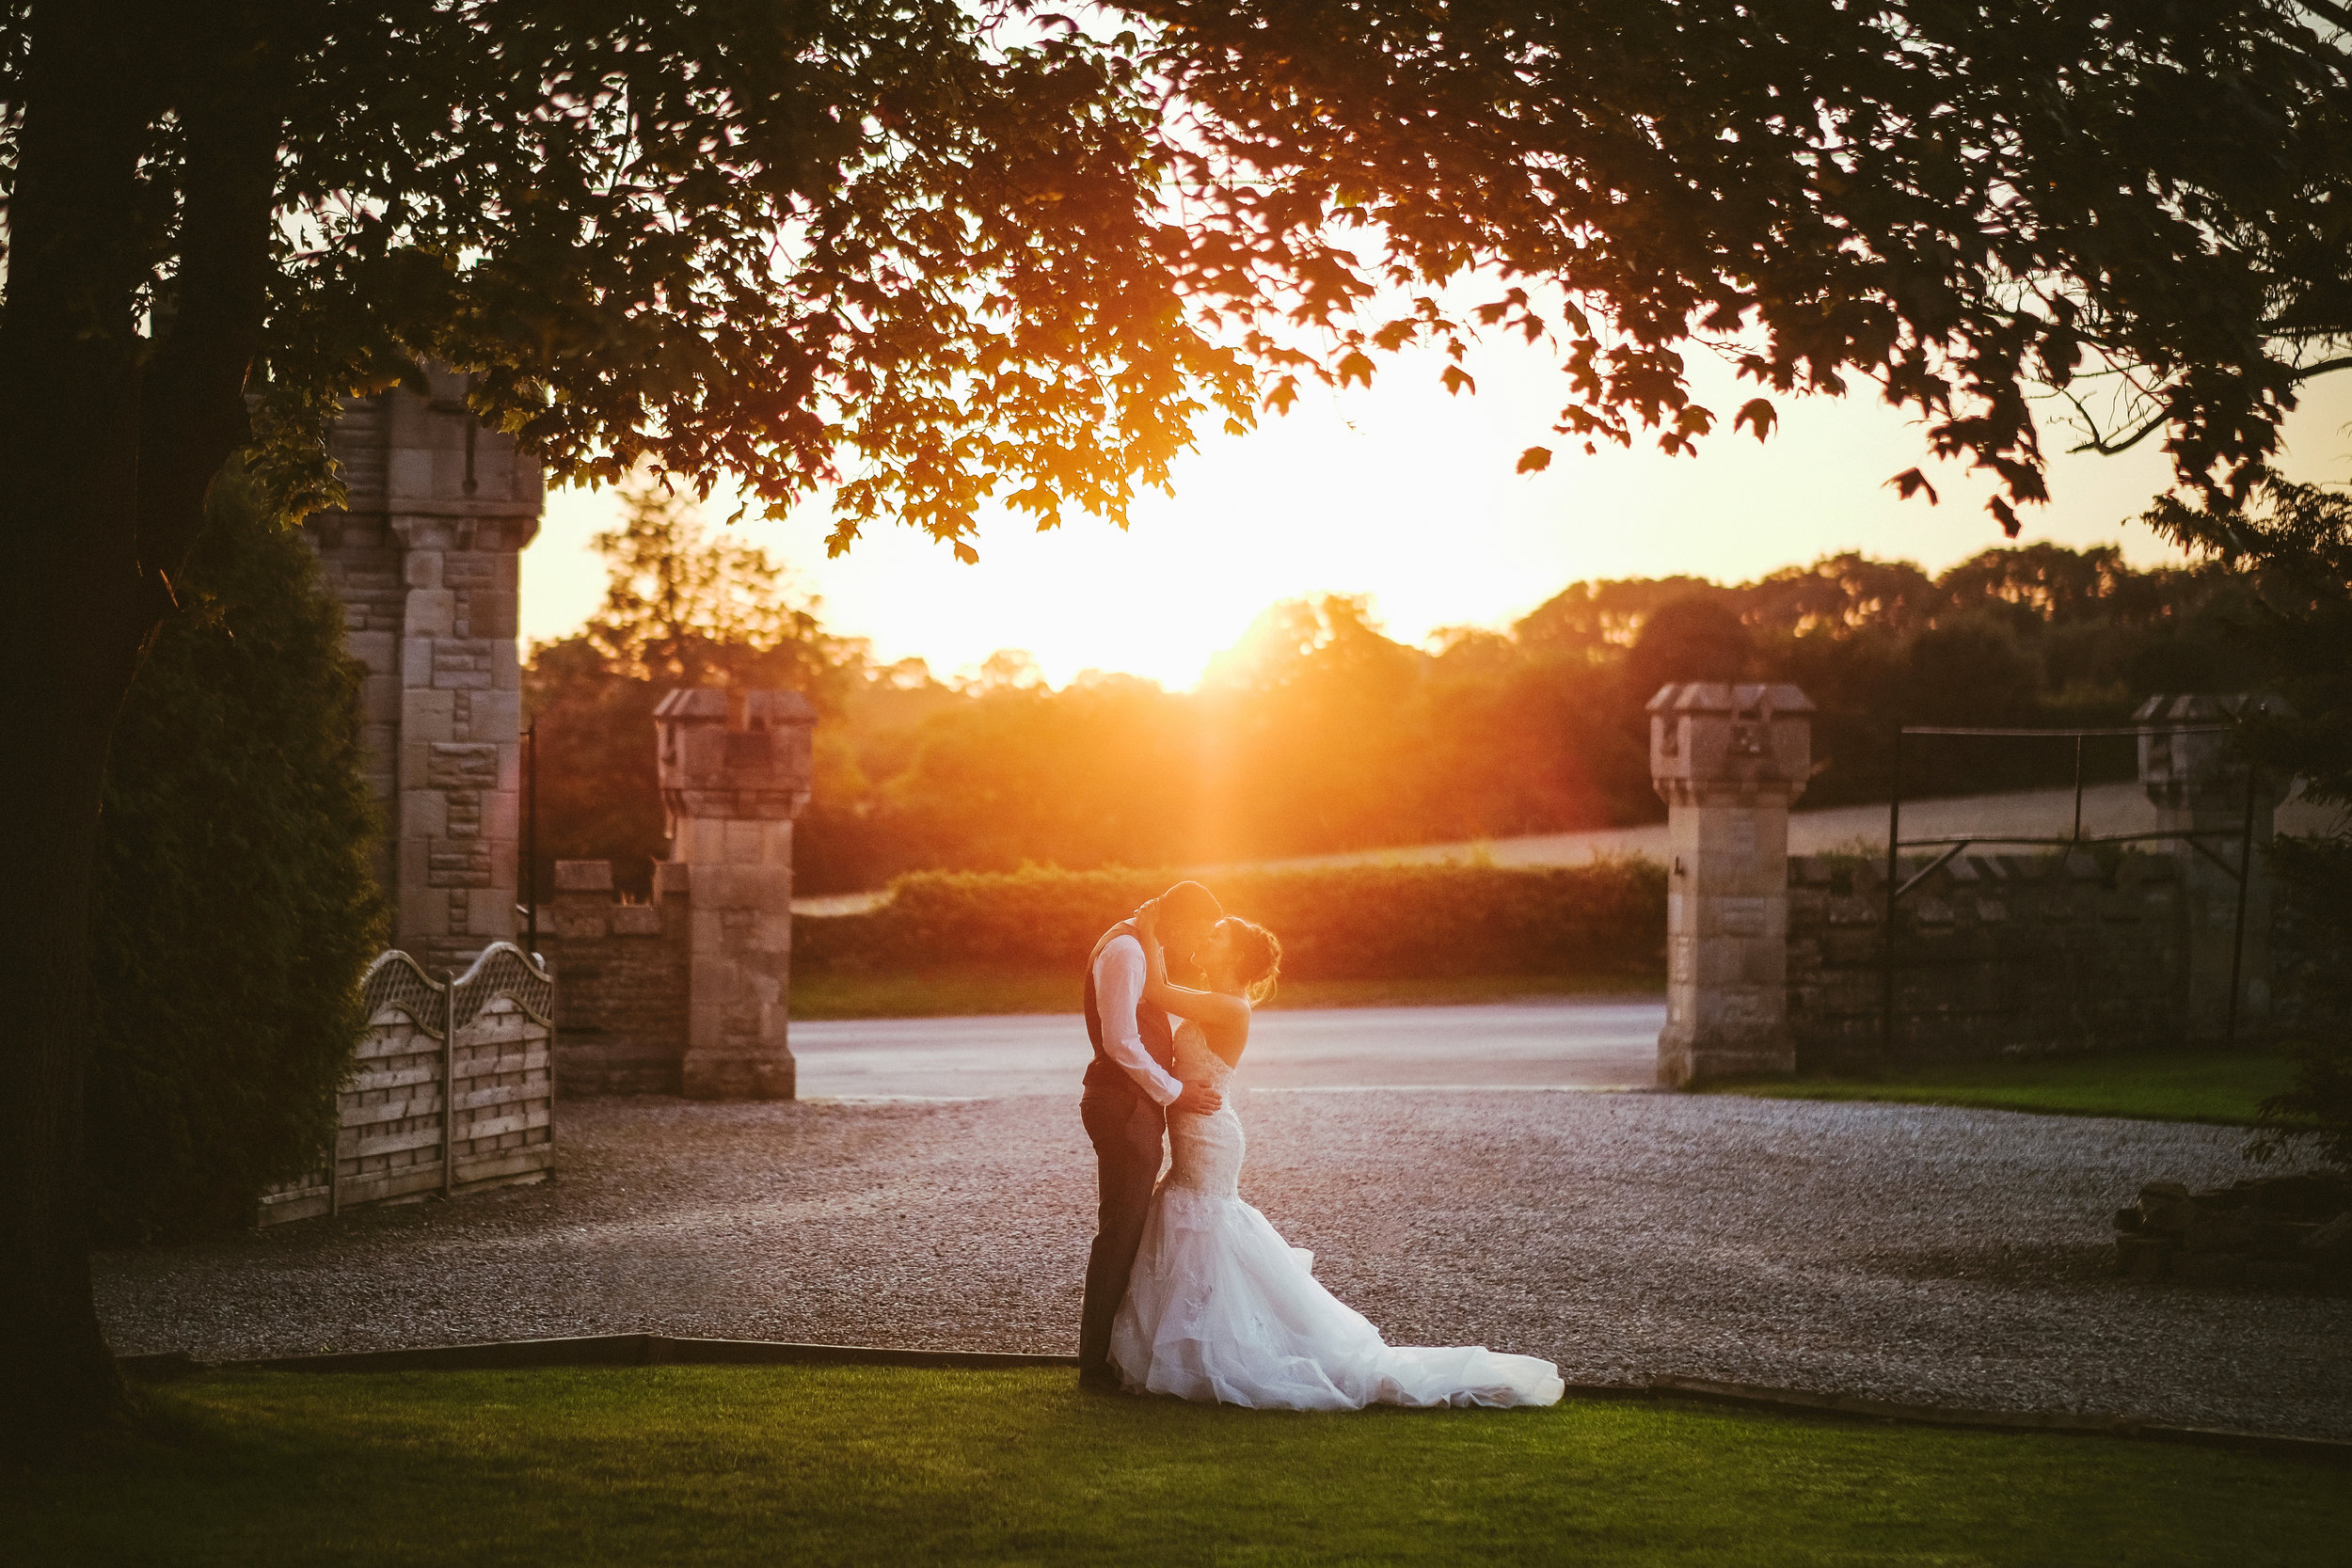 How to look and feel confident in your wedding photos